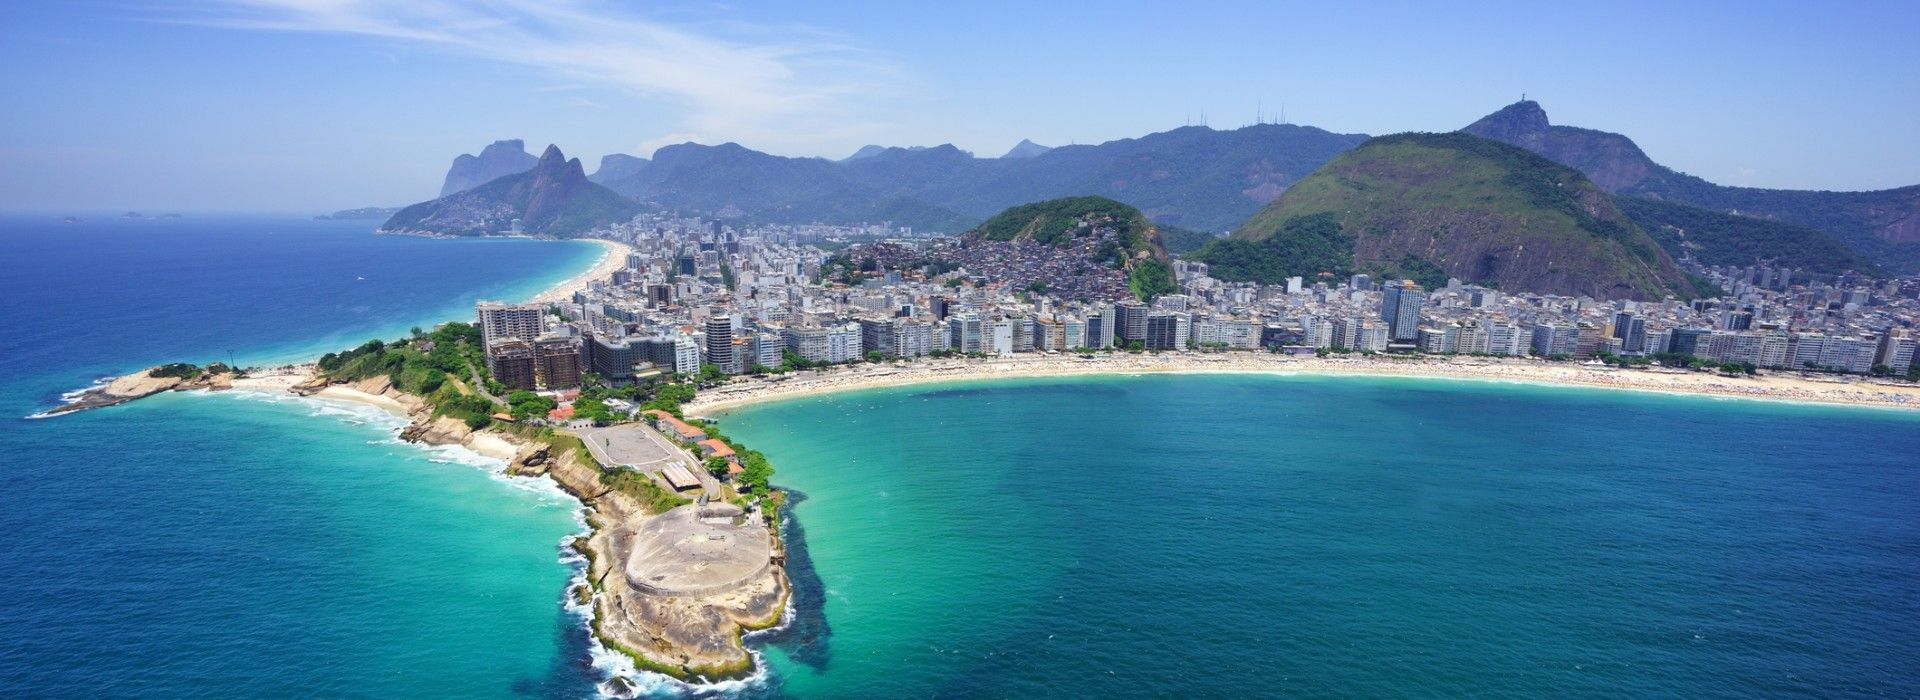 Travelling Rio de Janerio - Tours and Holiday Packages in Rio de Janerio